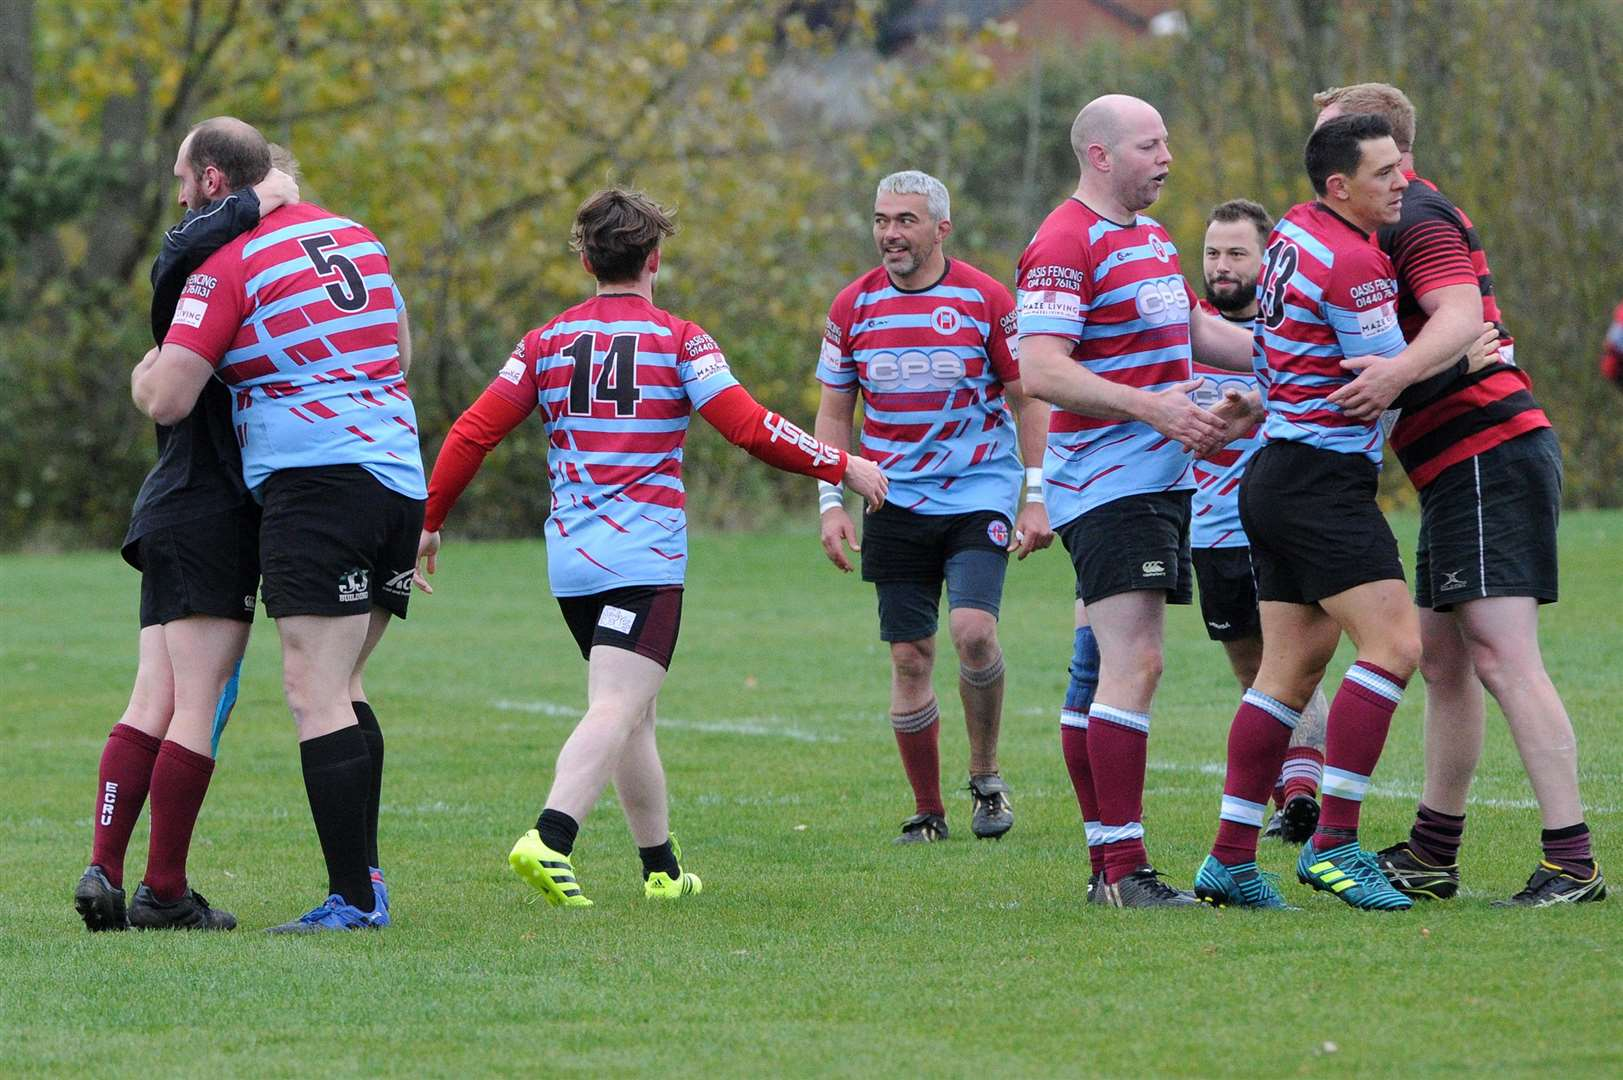 RUGBY - Haverhill v Mildenhall & Red Lodge..Pictured: ...PICTURE: Mecha Morton... .. (5538468)